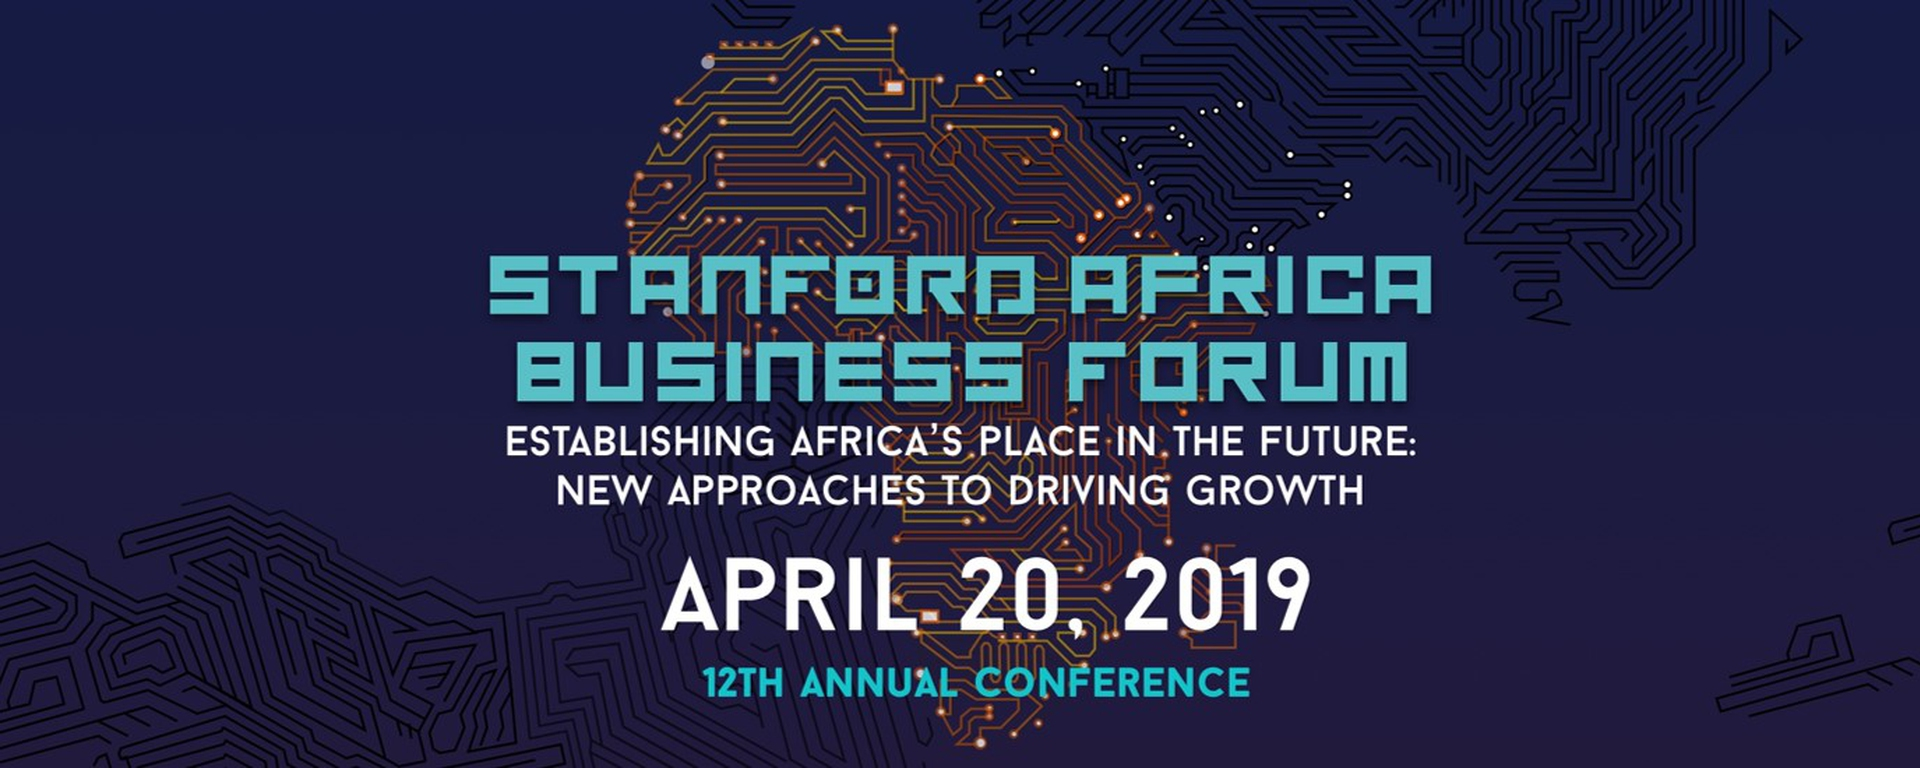 Stanford Africa Business Forum 2019 at Stanford Graduate School of